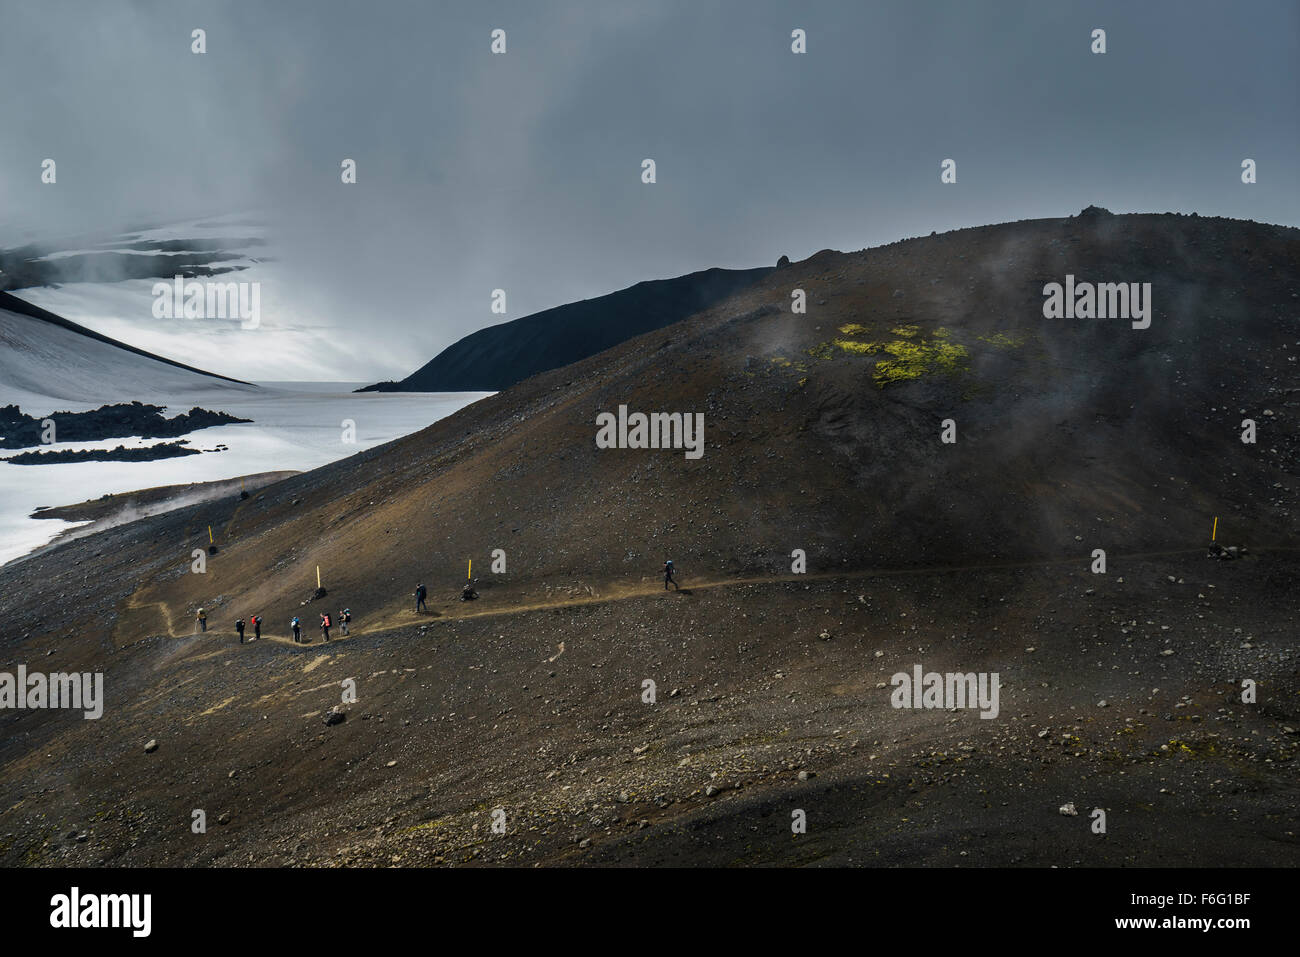 People walking by, Fimmvorduhals near Eyjafjallajokull glacier, Iceland - Stock Image